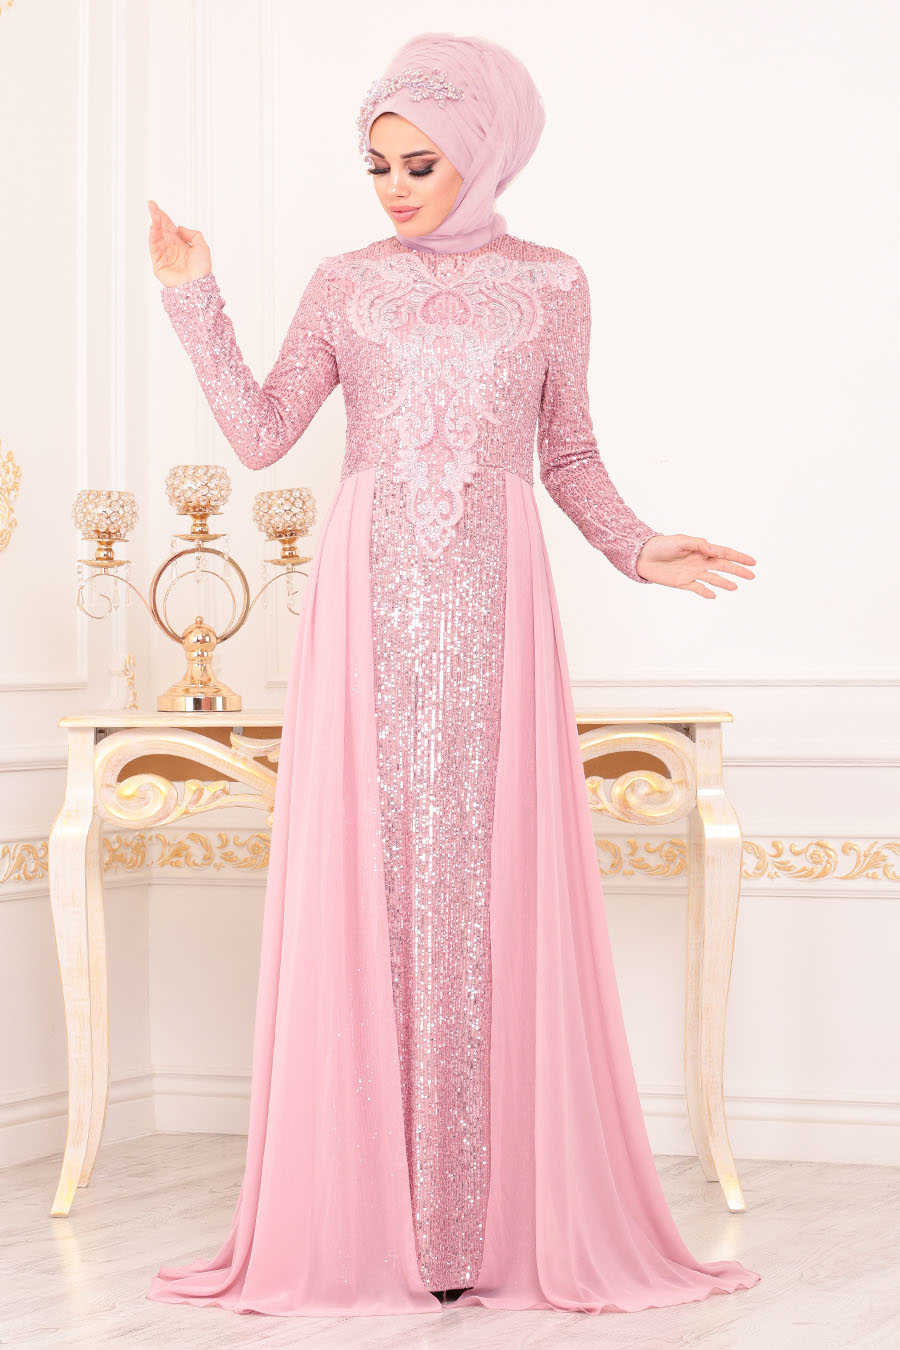 Neva Style - Powder Pink Hijab Evening Dress 25724PD